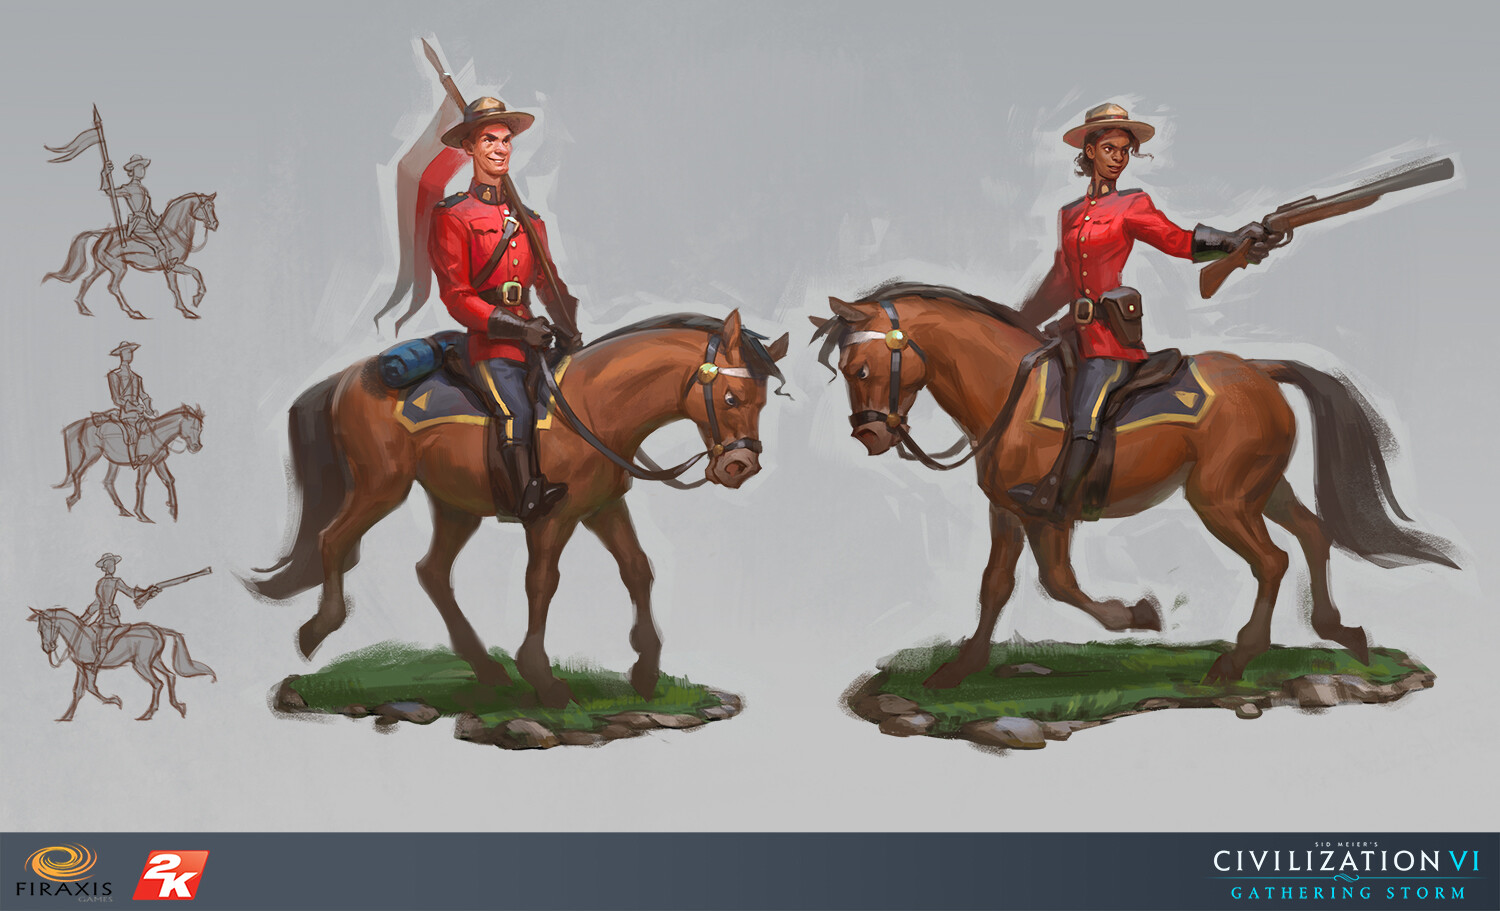 ArtStation - Canadian Mountie (Civilization VI: Gathering Storm